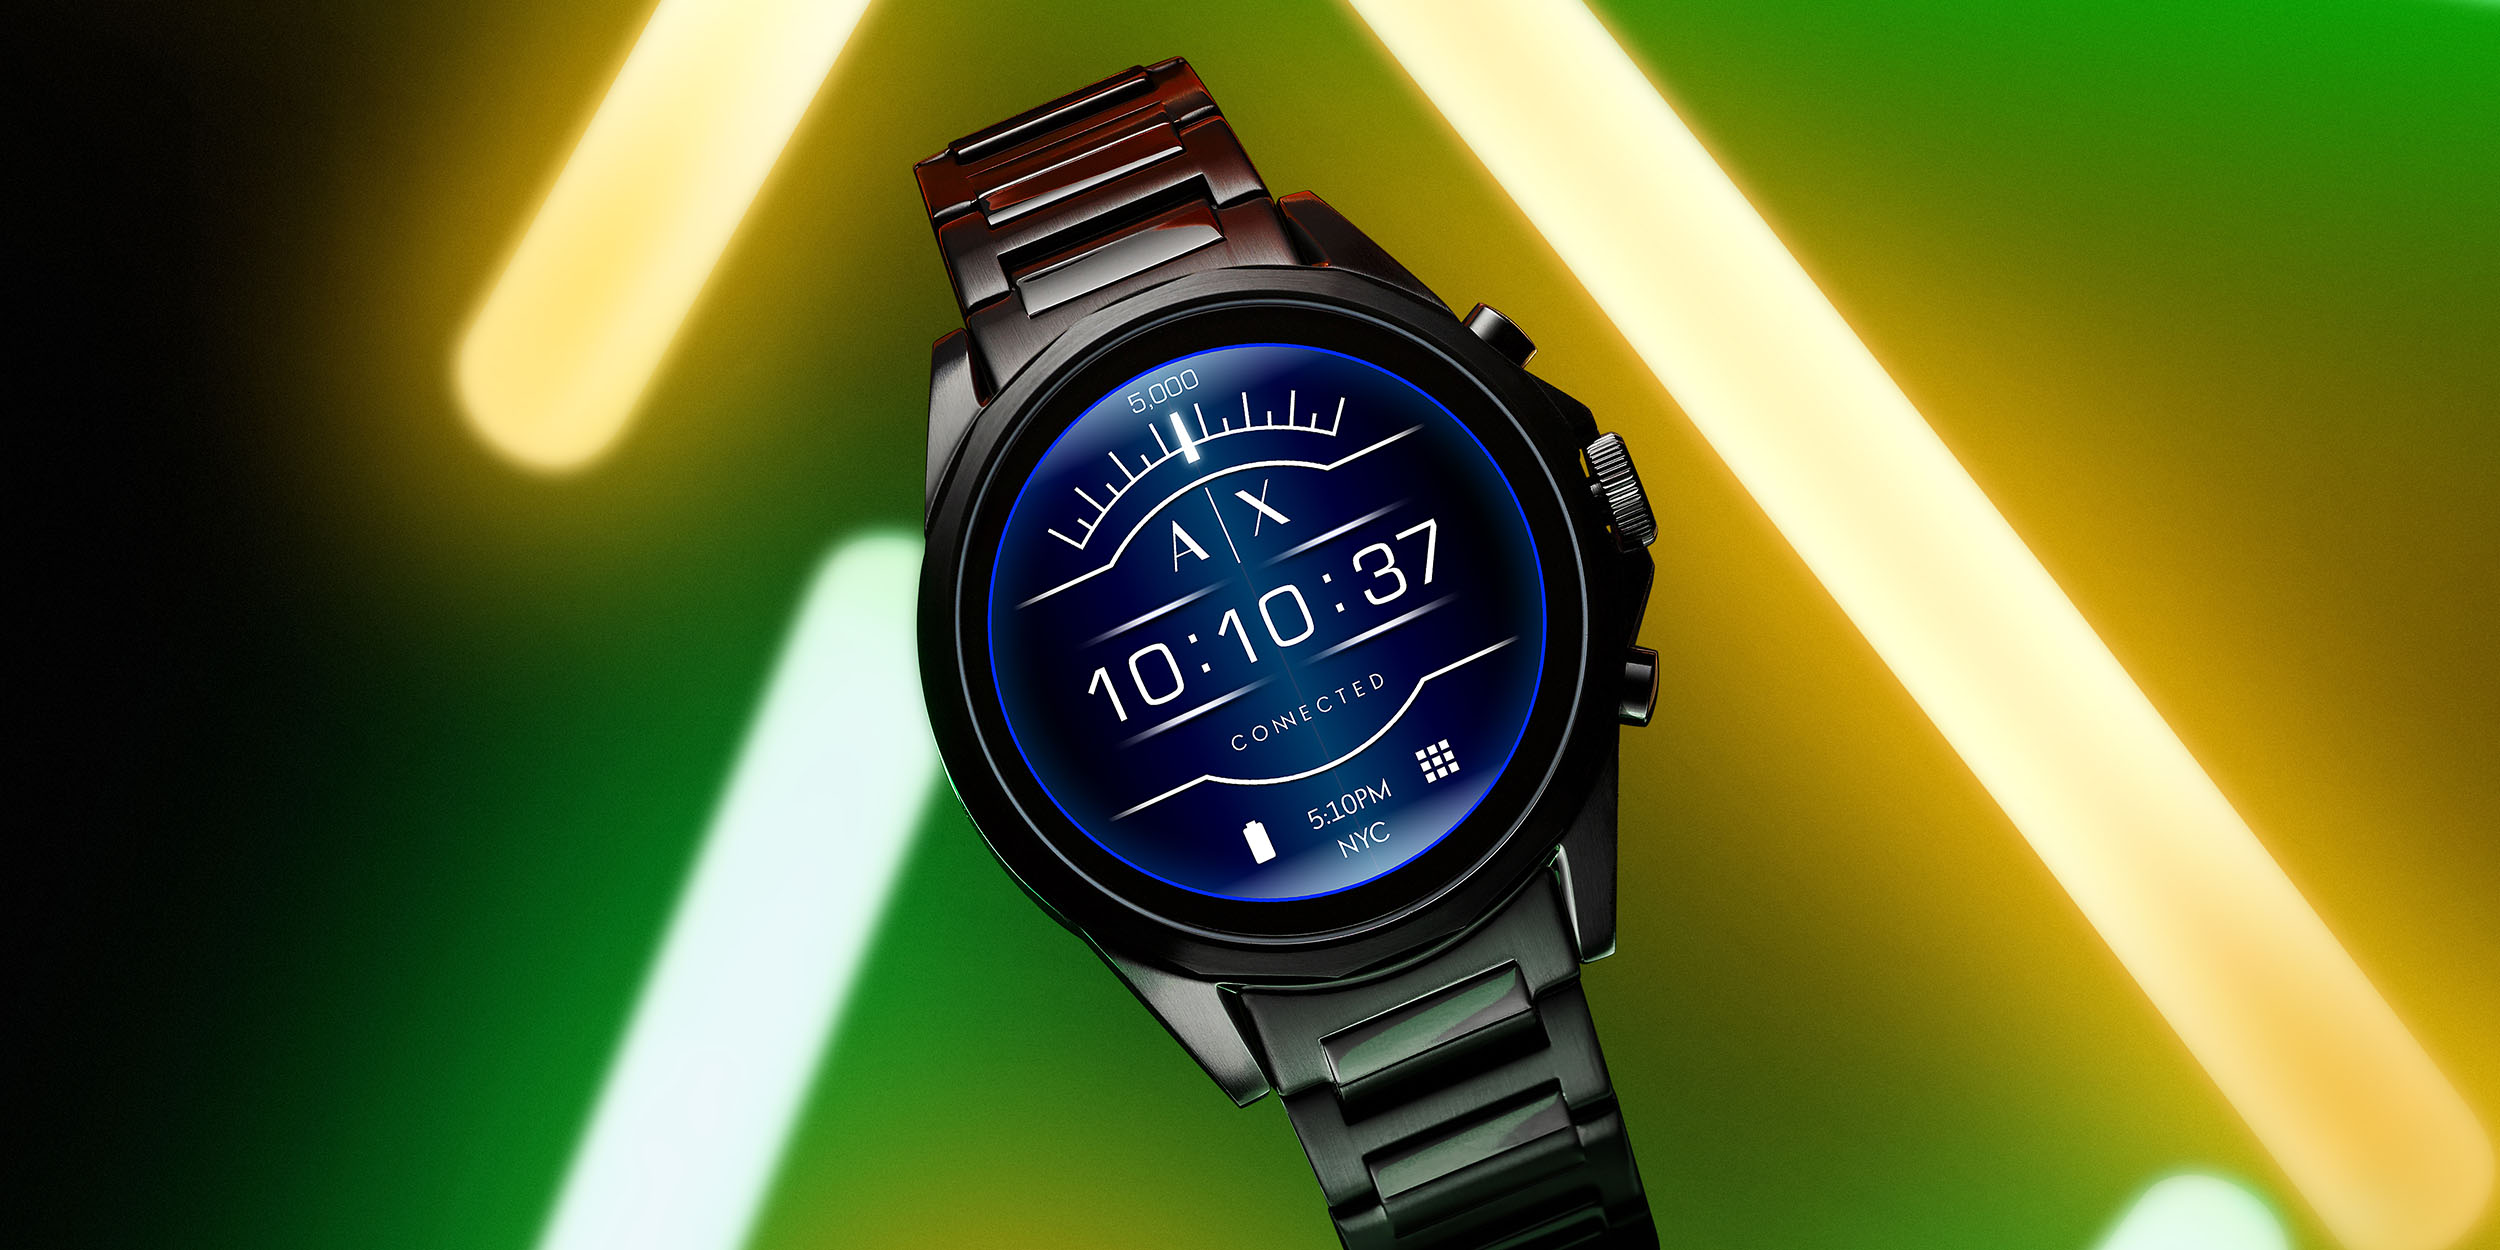 armani exchanged connected is the company s first smartwatch w wear os nfc heart rate more